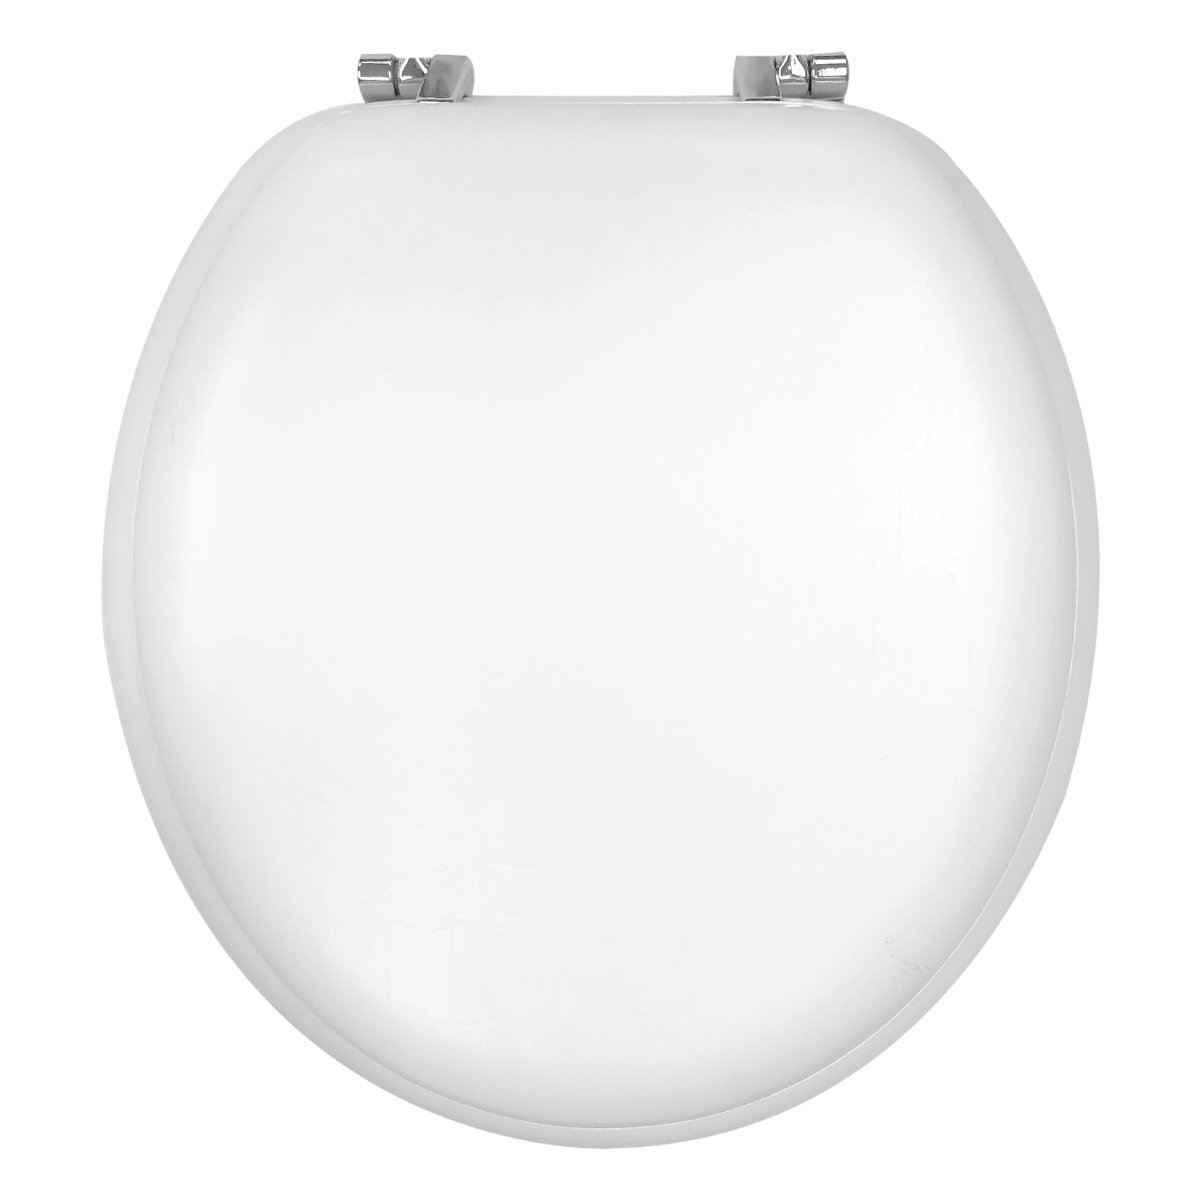 Design Trends Standard Memory Foam Toilet Seat with Chrome Hinges, White by Ginsey Home Solutions (GINSV)